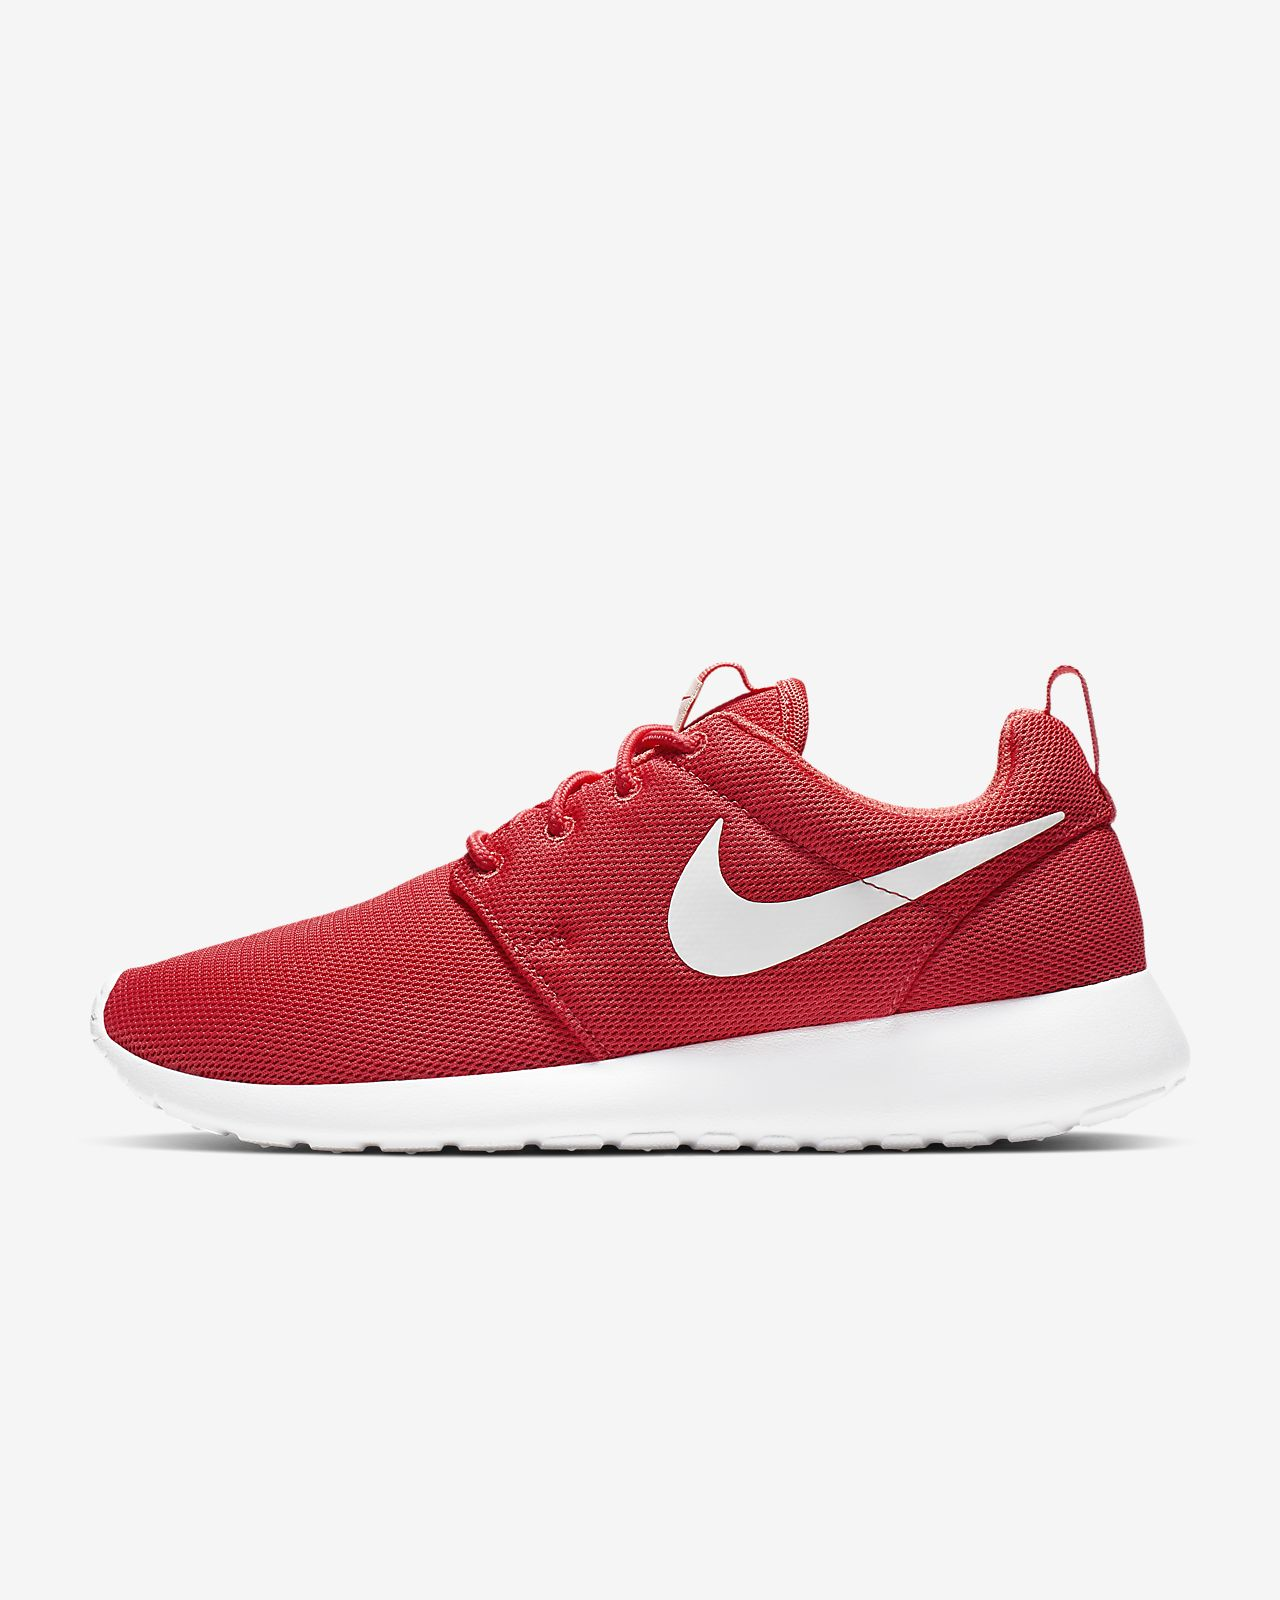 a563777b3774 Nike Roshe One Women s Shoe. Nike.com